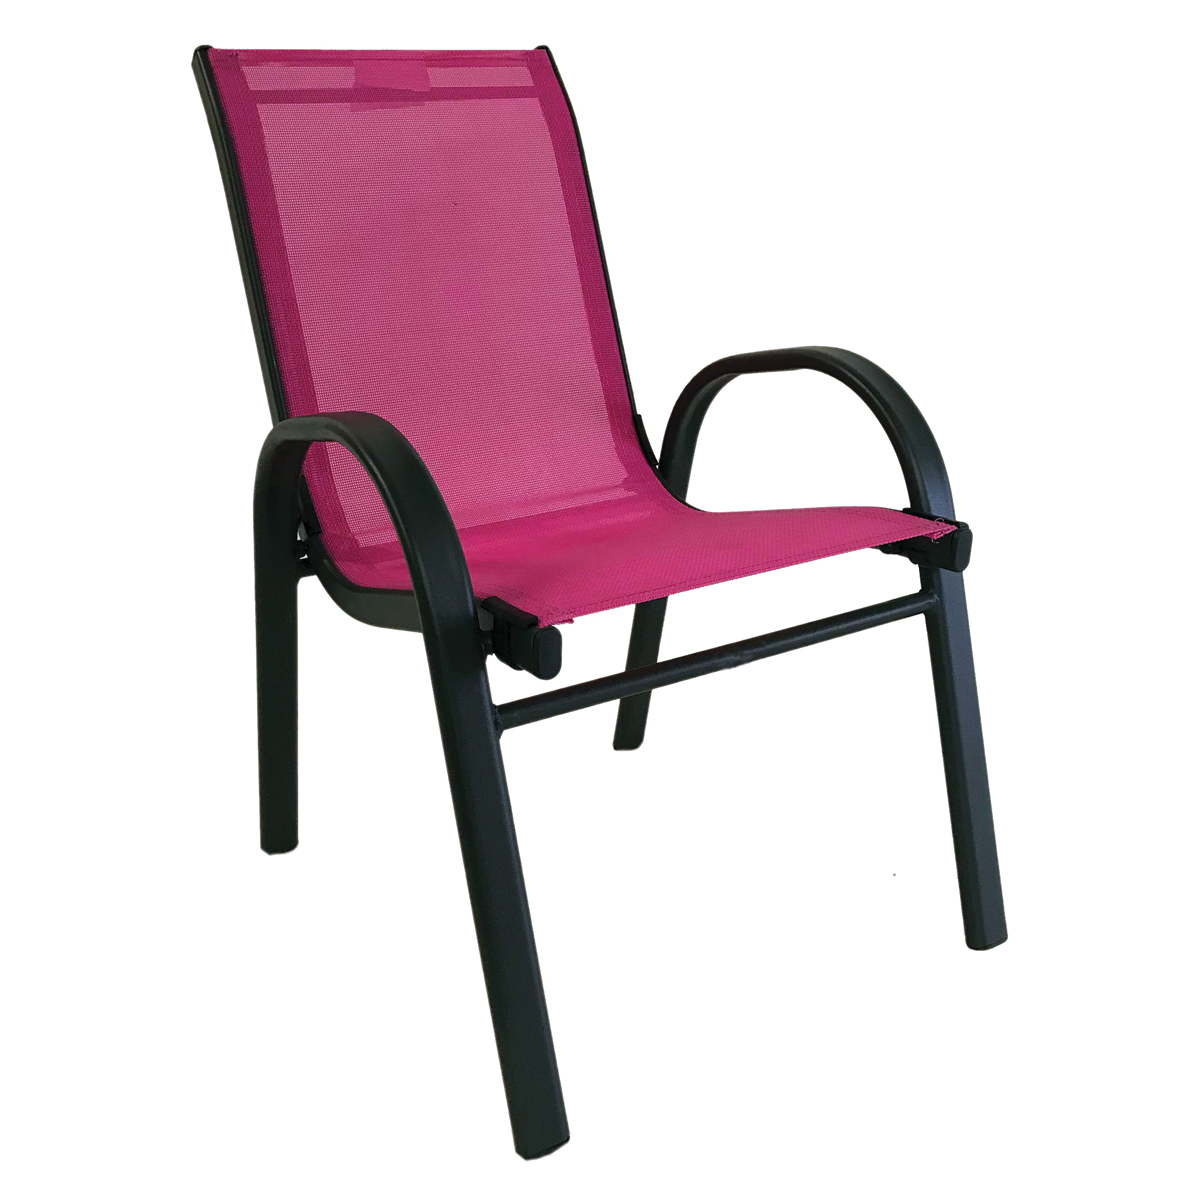 Picture of Seasonal Trends 50482 Kiddy Stack Chair, 2 to 6 Years, Textilene 2x1, Bright Pink, 23.03 in OAH